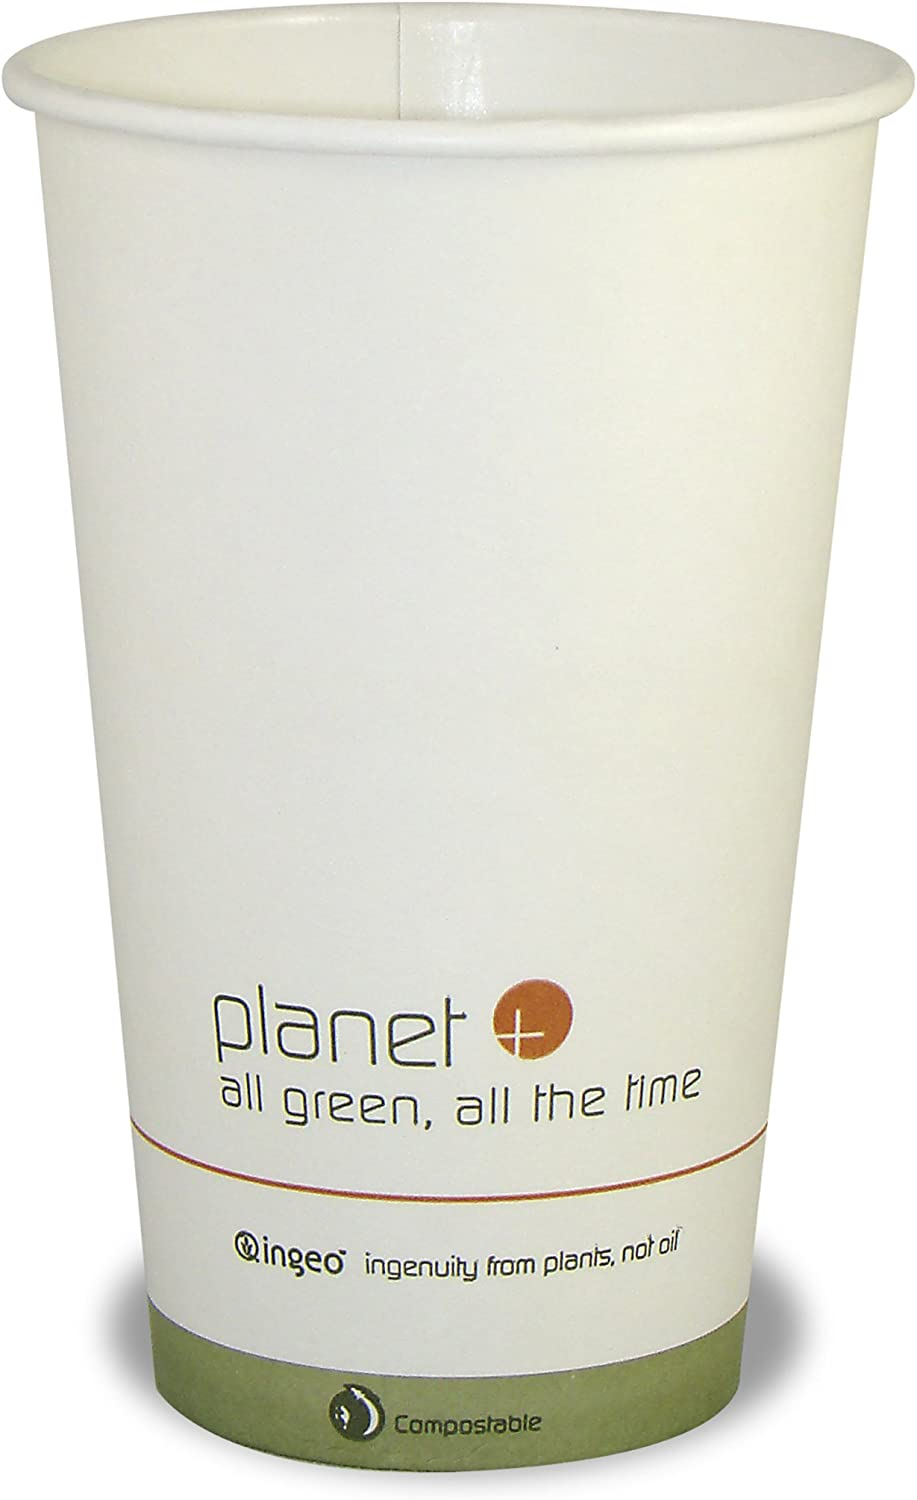 Planet + 100% Compostable PLA Laminated Hot Cup, 16-Ounce, 1000-Count Case